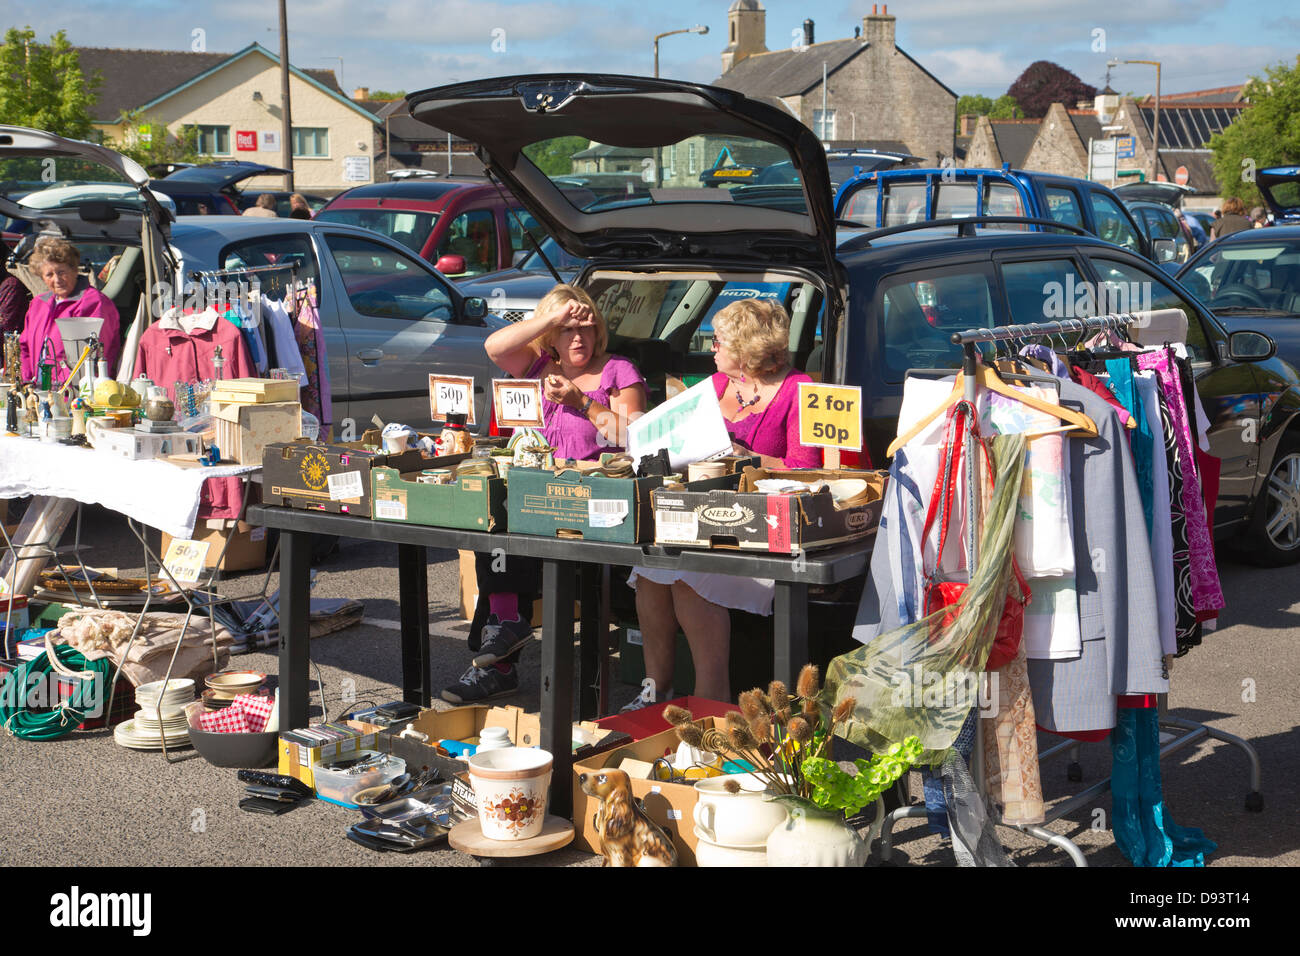 People selling items at a car boot sale in cowbridge south wales united kingdom